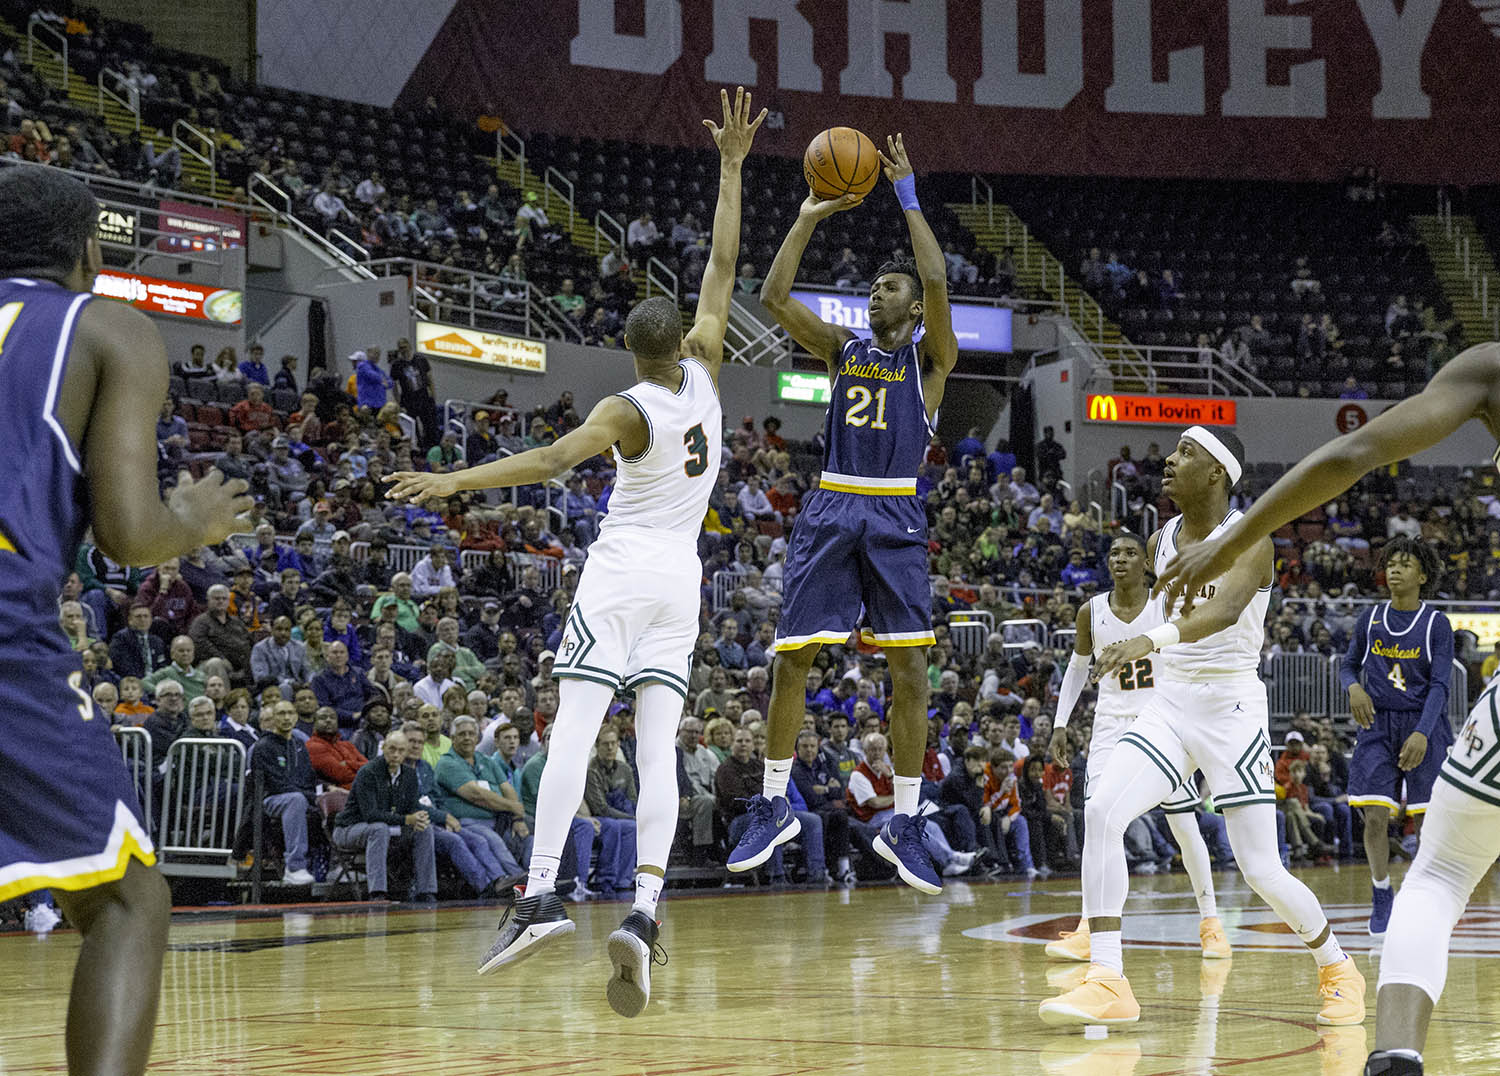 Southeast's Anthony Fairlee puts up a shot in front of Morgan Park's Cam Burrell during the 3A championship game at Carver Arena in Peoria, Ill., Saturday, March 17, 2018. [Ted Schurter/The State Journal-Register]